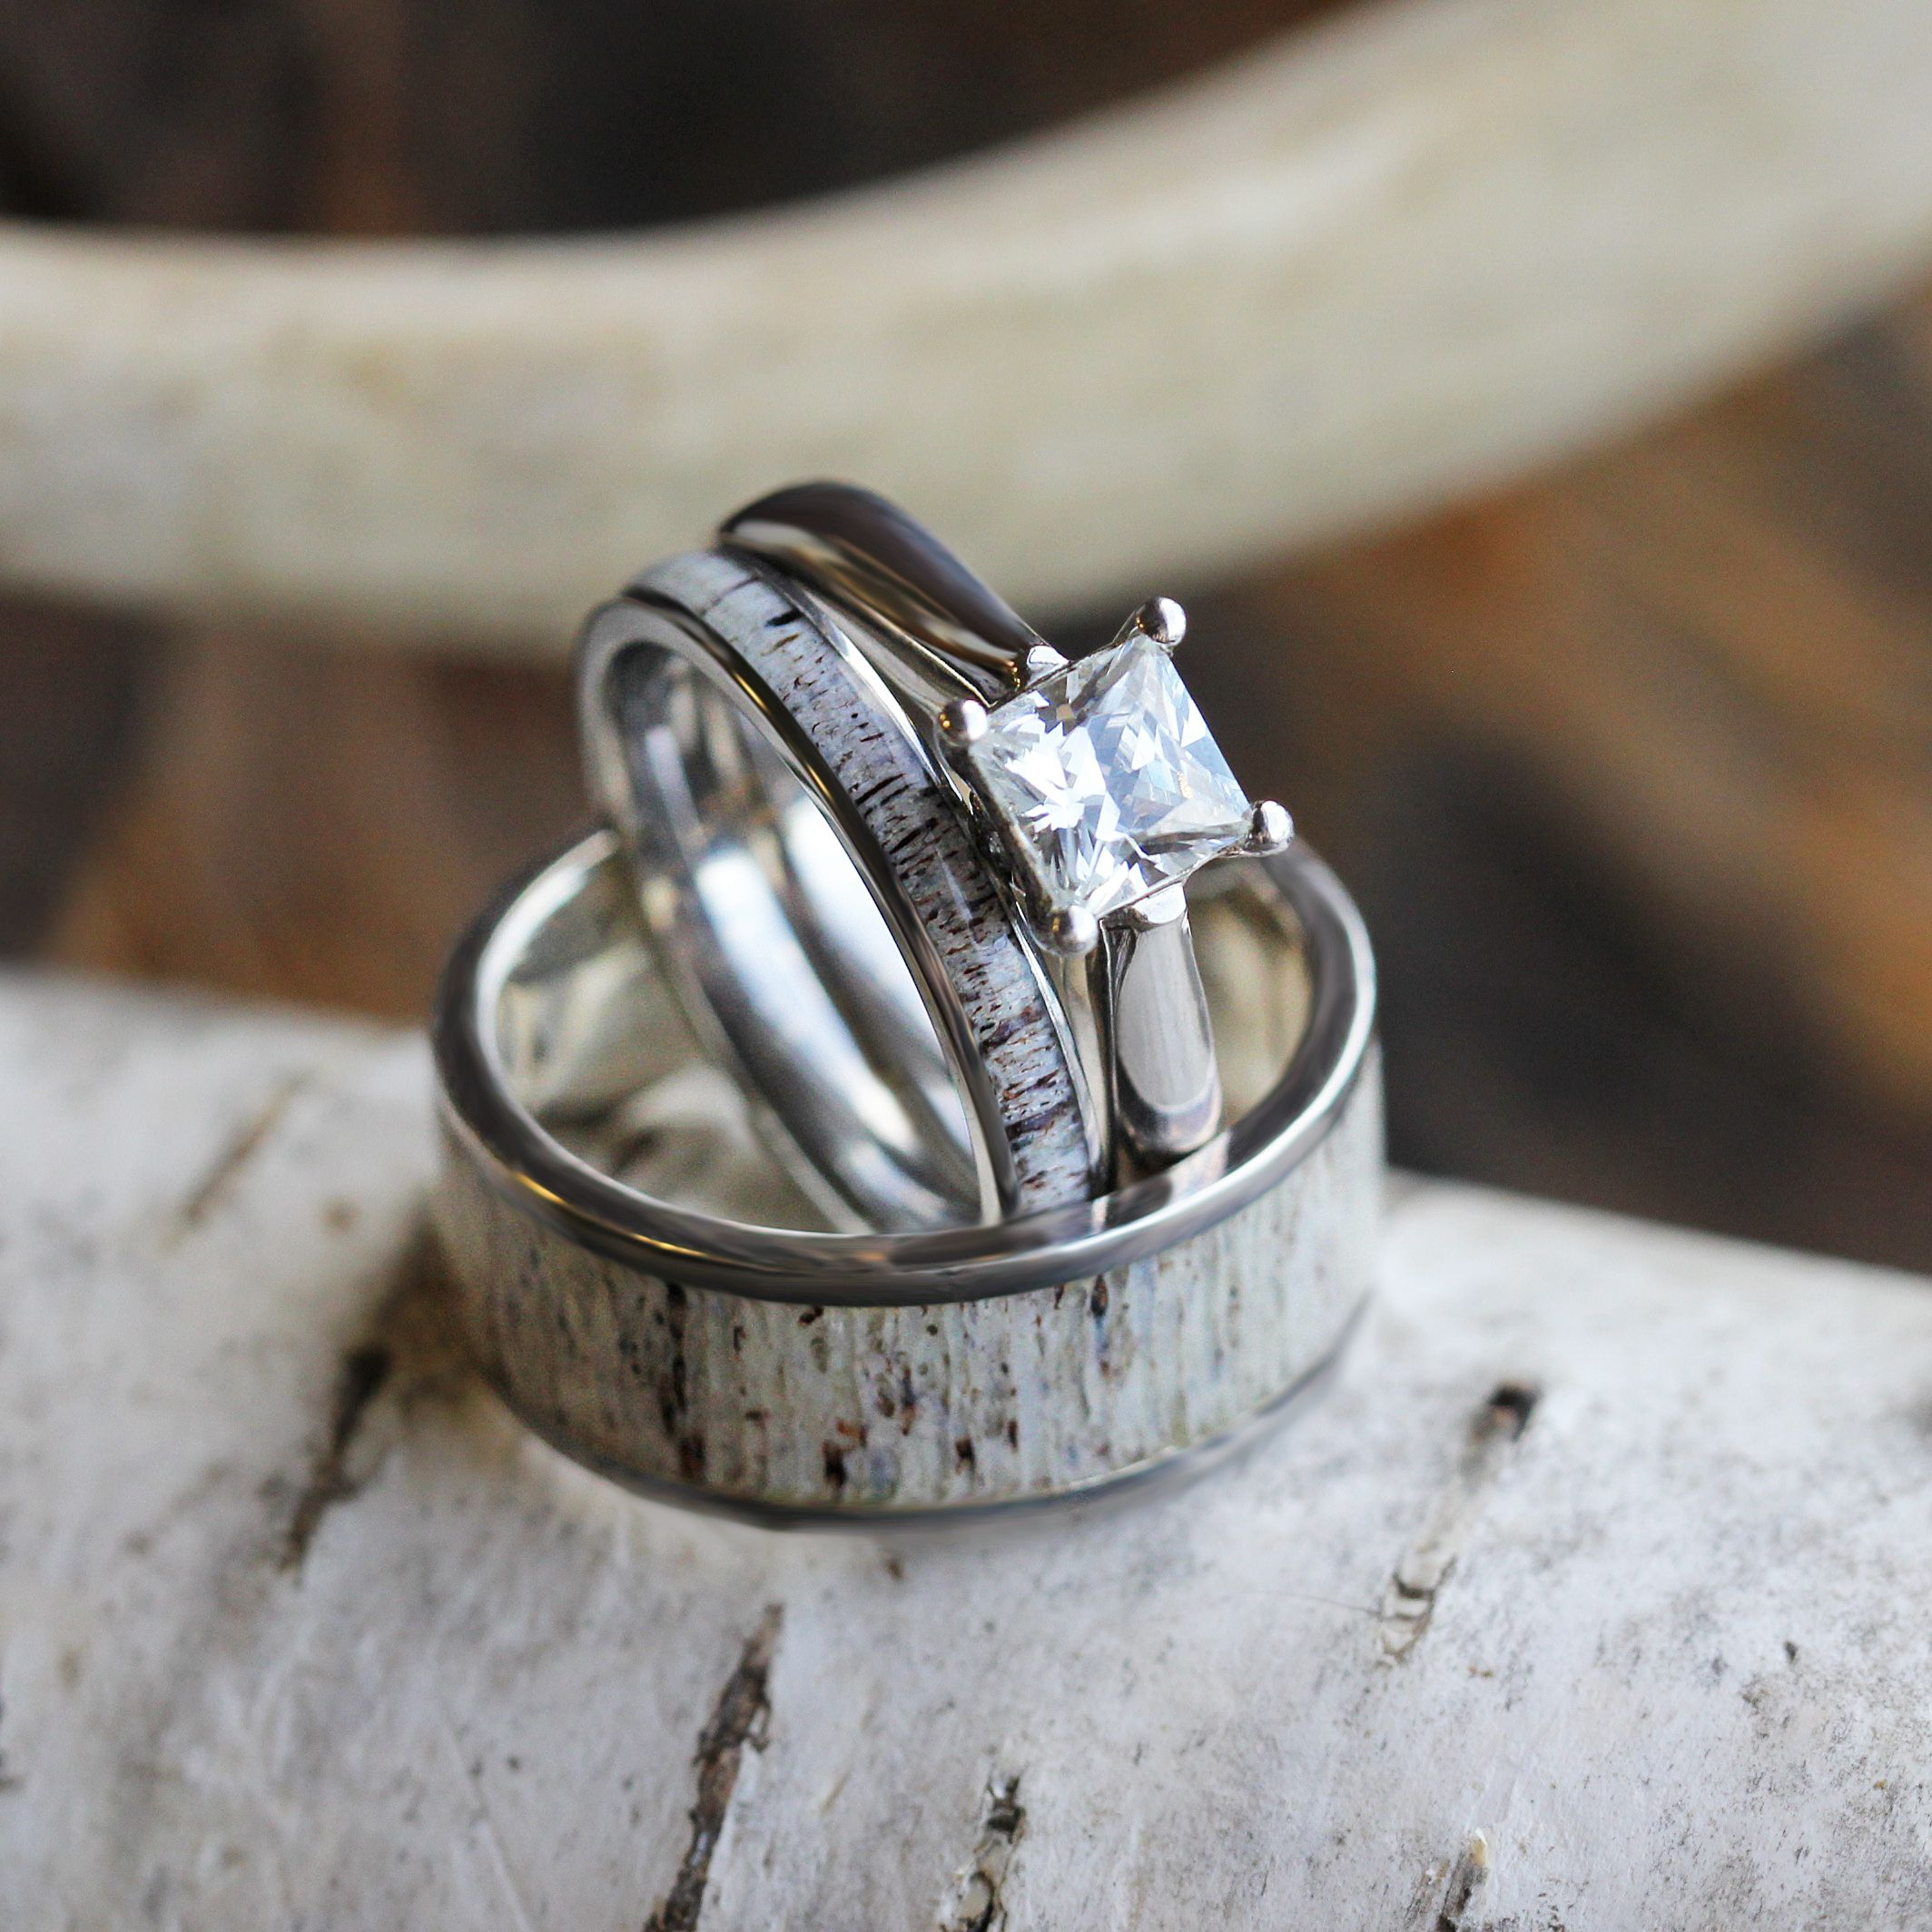 on ring rings wedding antler deer hand beautiful antlers elk and hoof